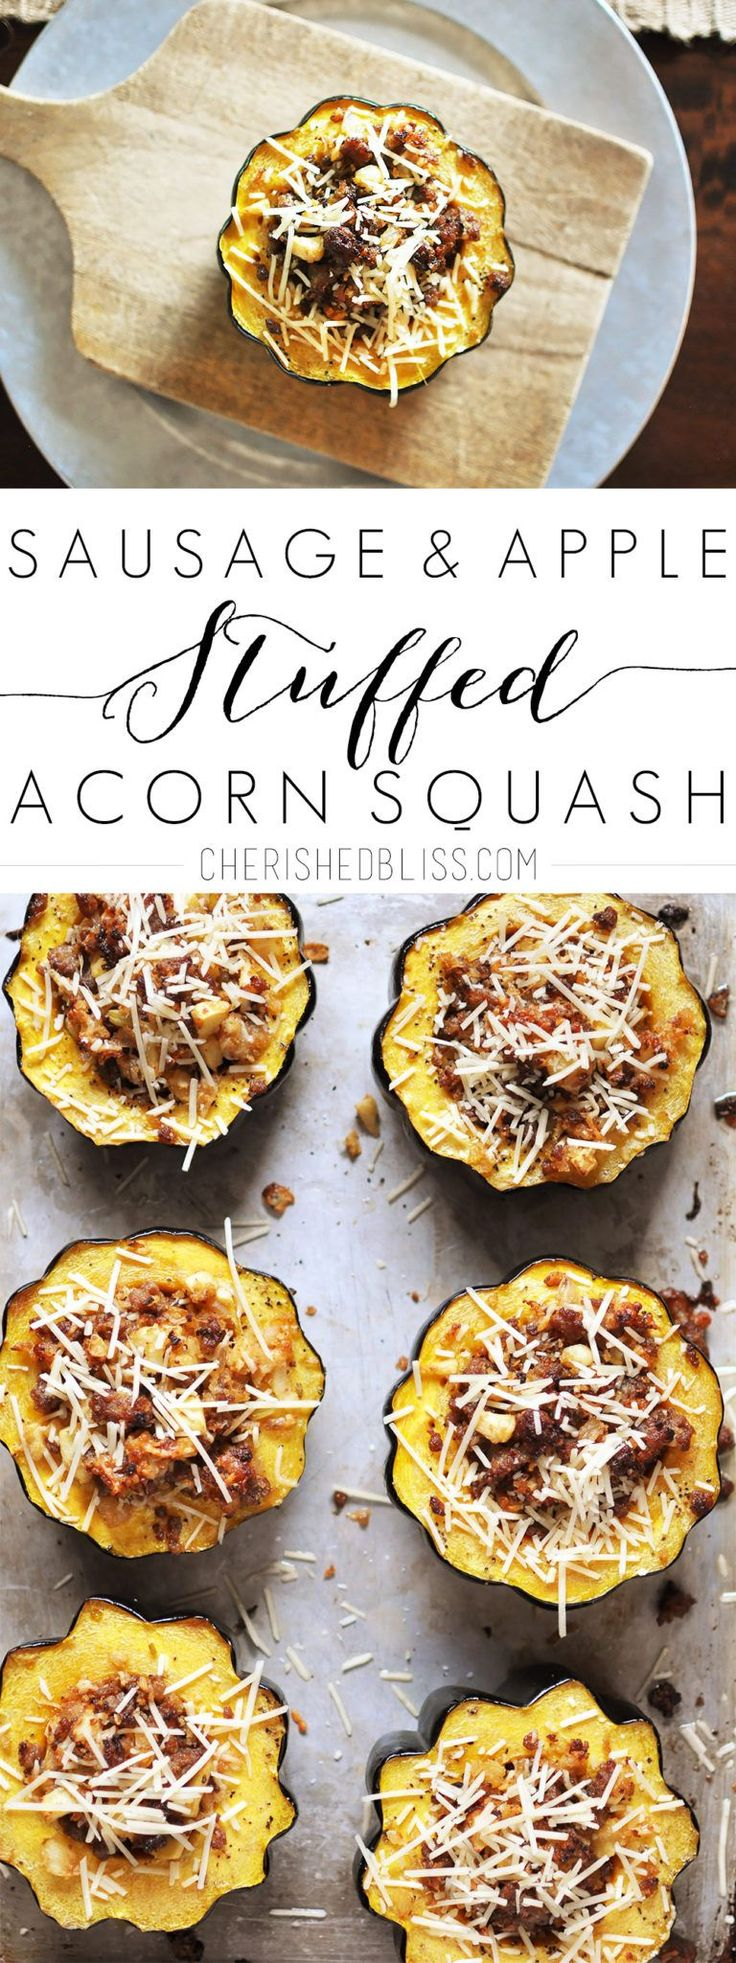 These Sausage and Apple Stuffed Acorn Squash are the perfect appetizer for the holidays or get together!